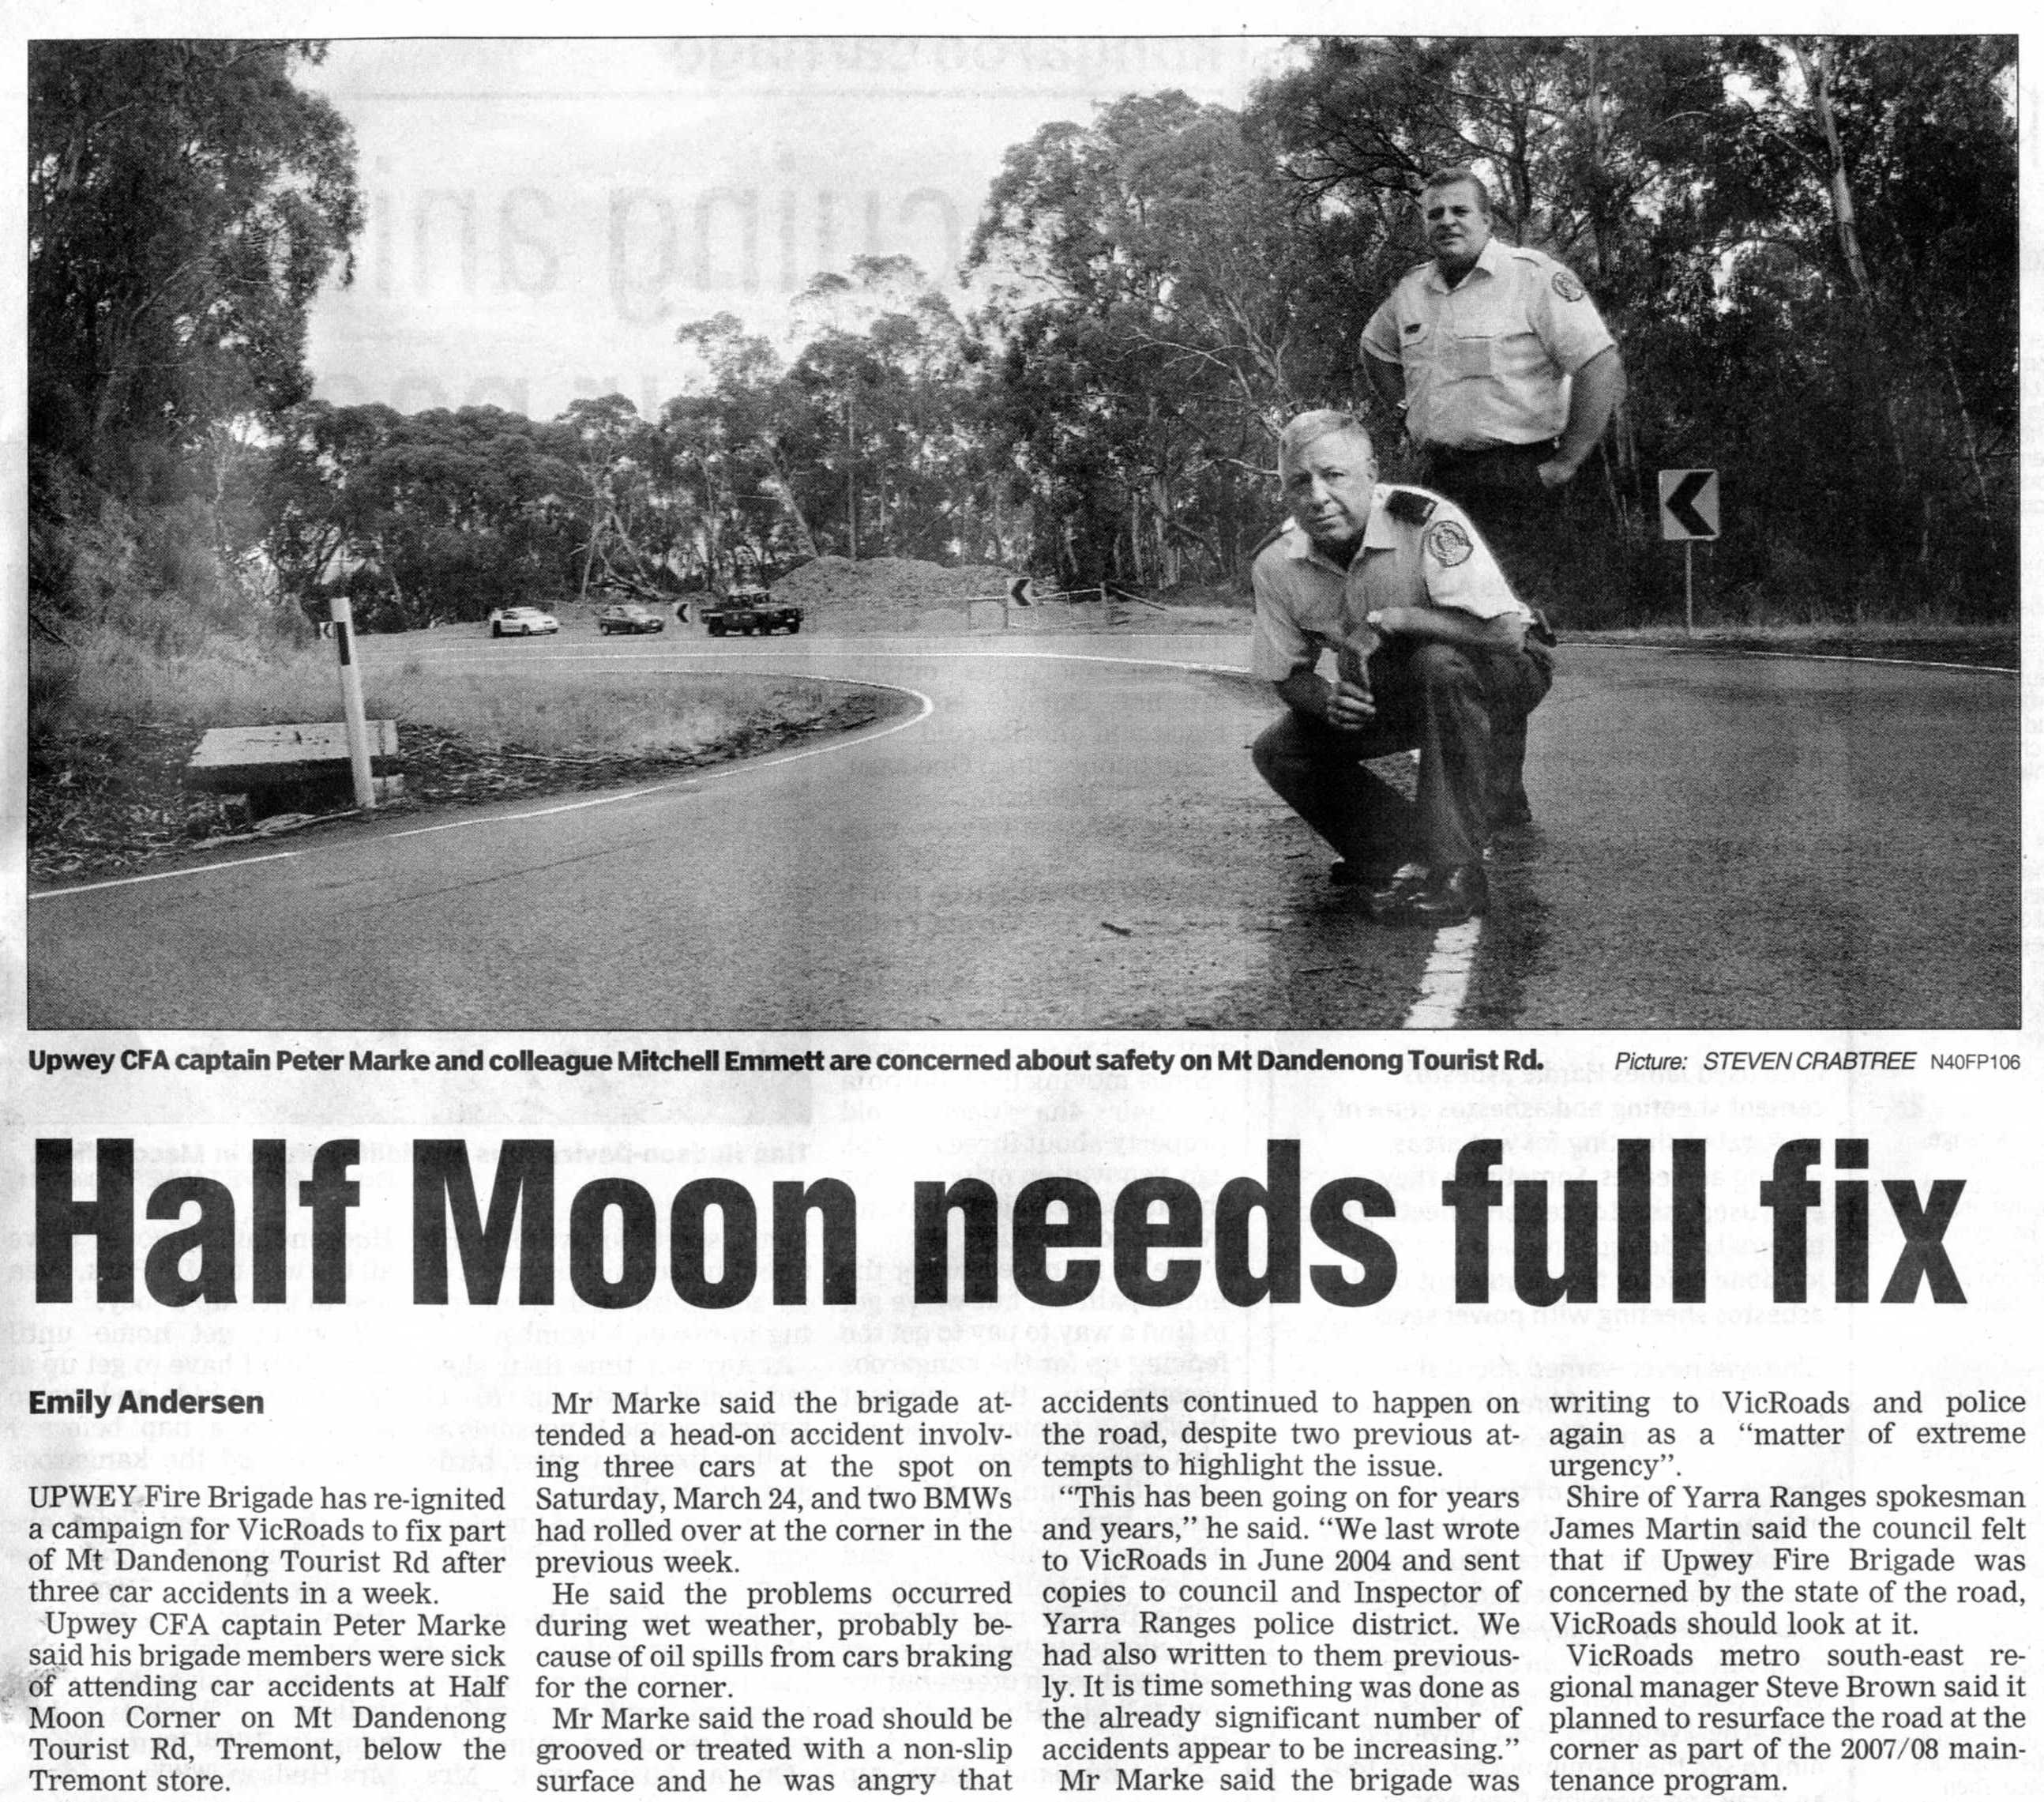 Half Moon needs full fix